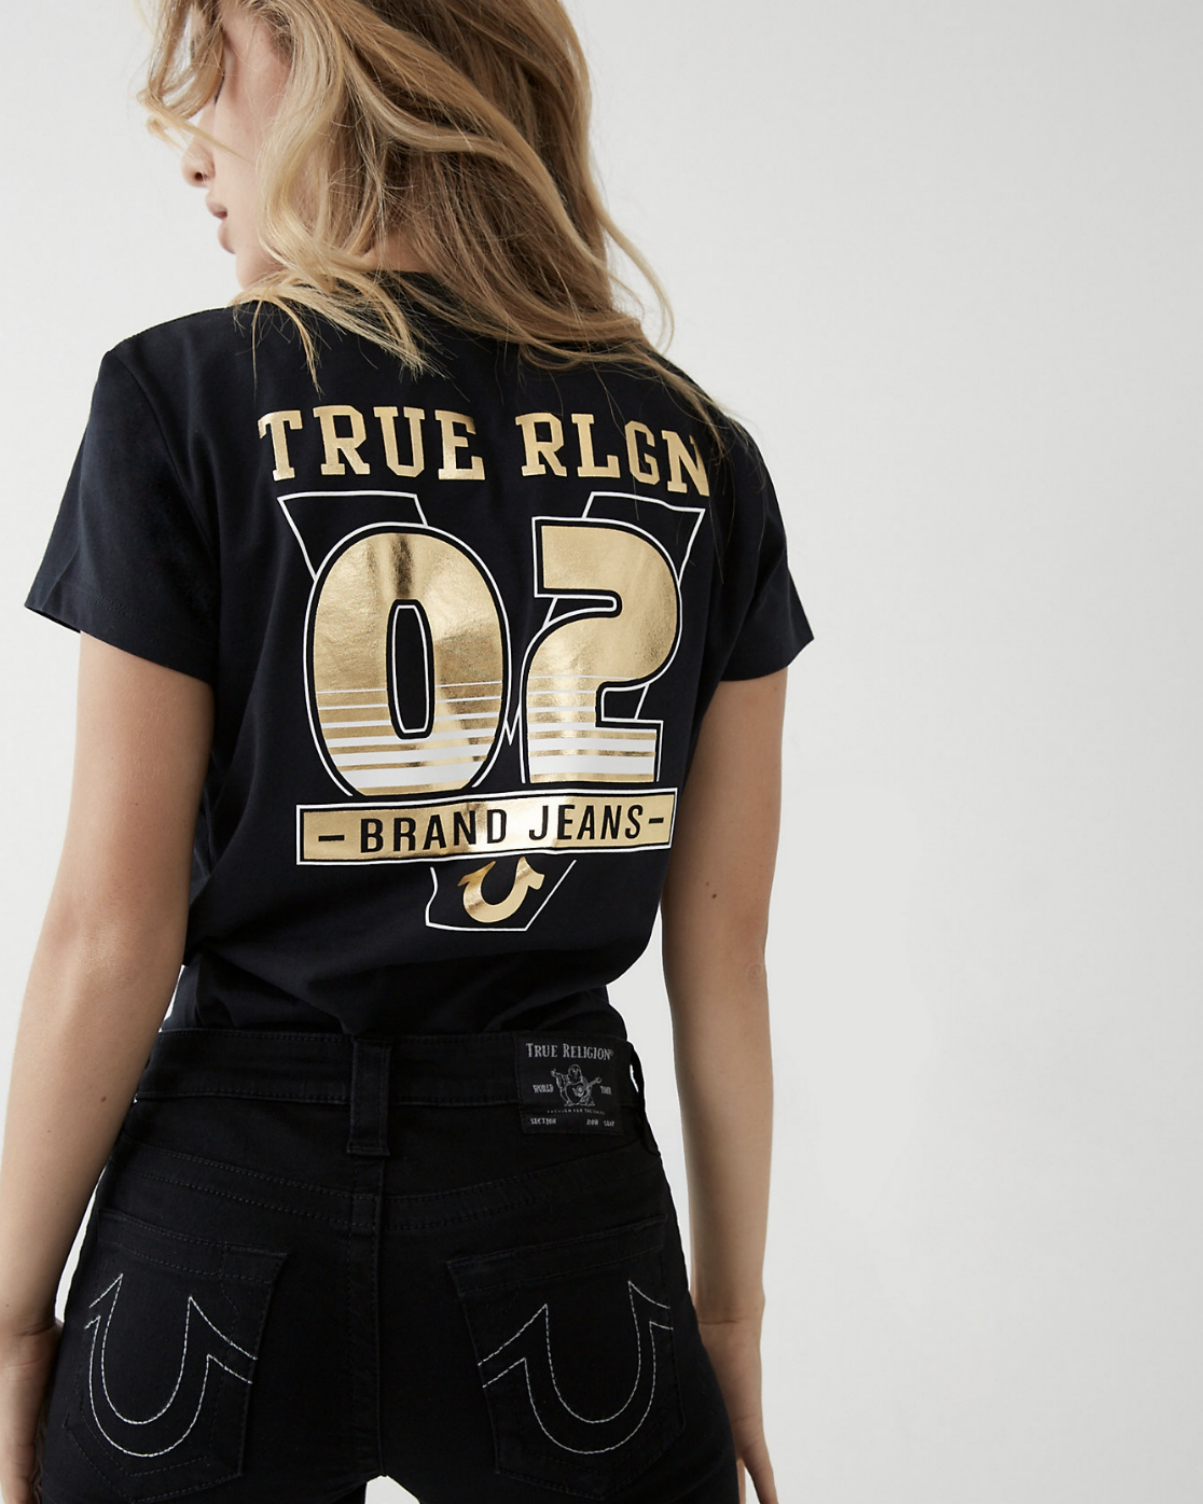 True Religion has resolved a lender dispute, paving the way for the premium denim brand to exit Chapter 11 bankruptcy court proceedings.